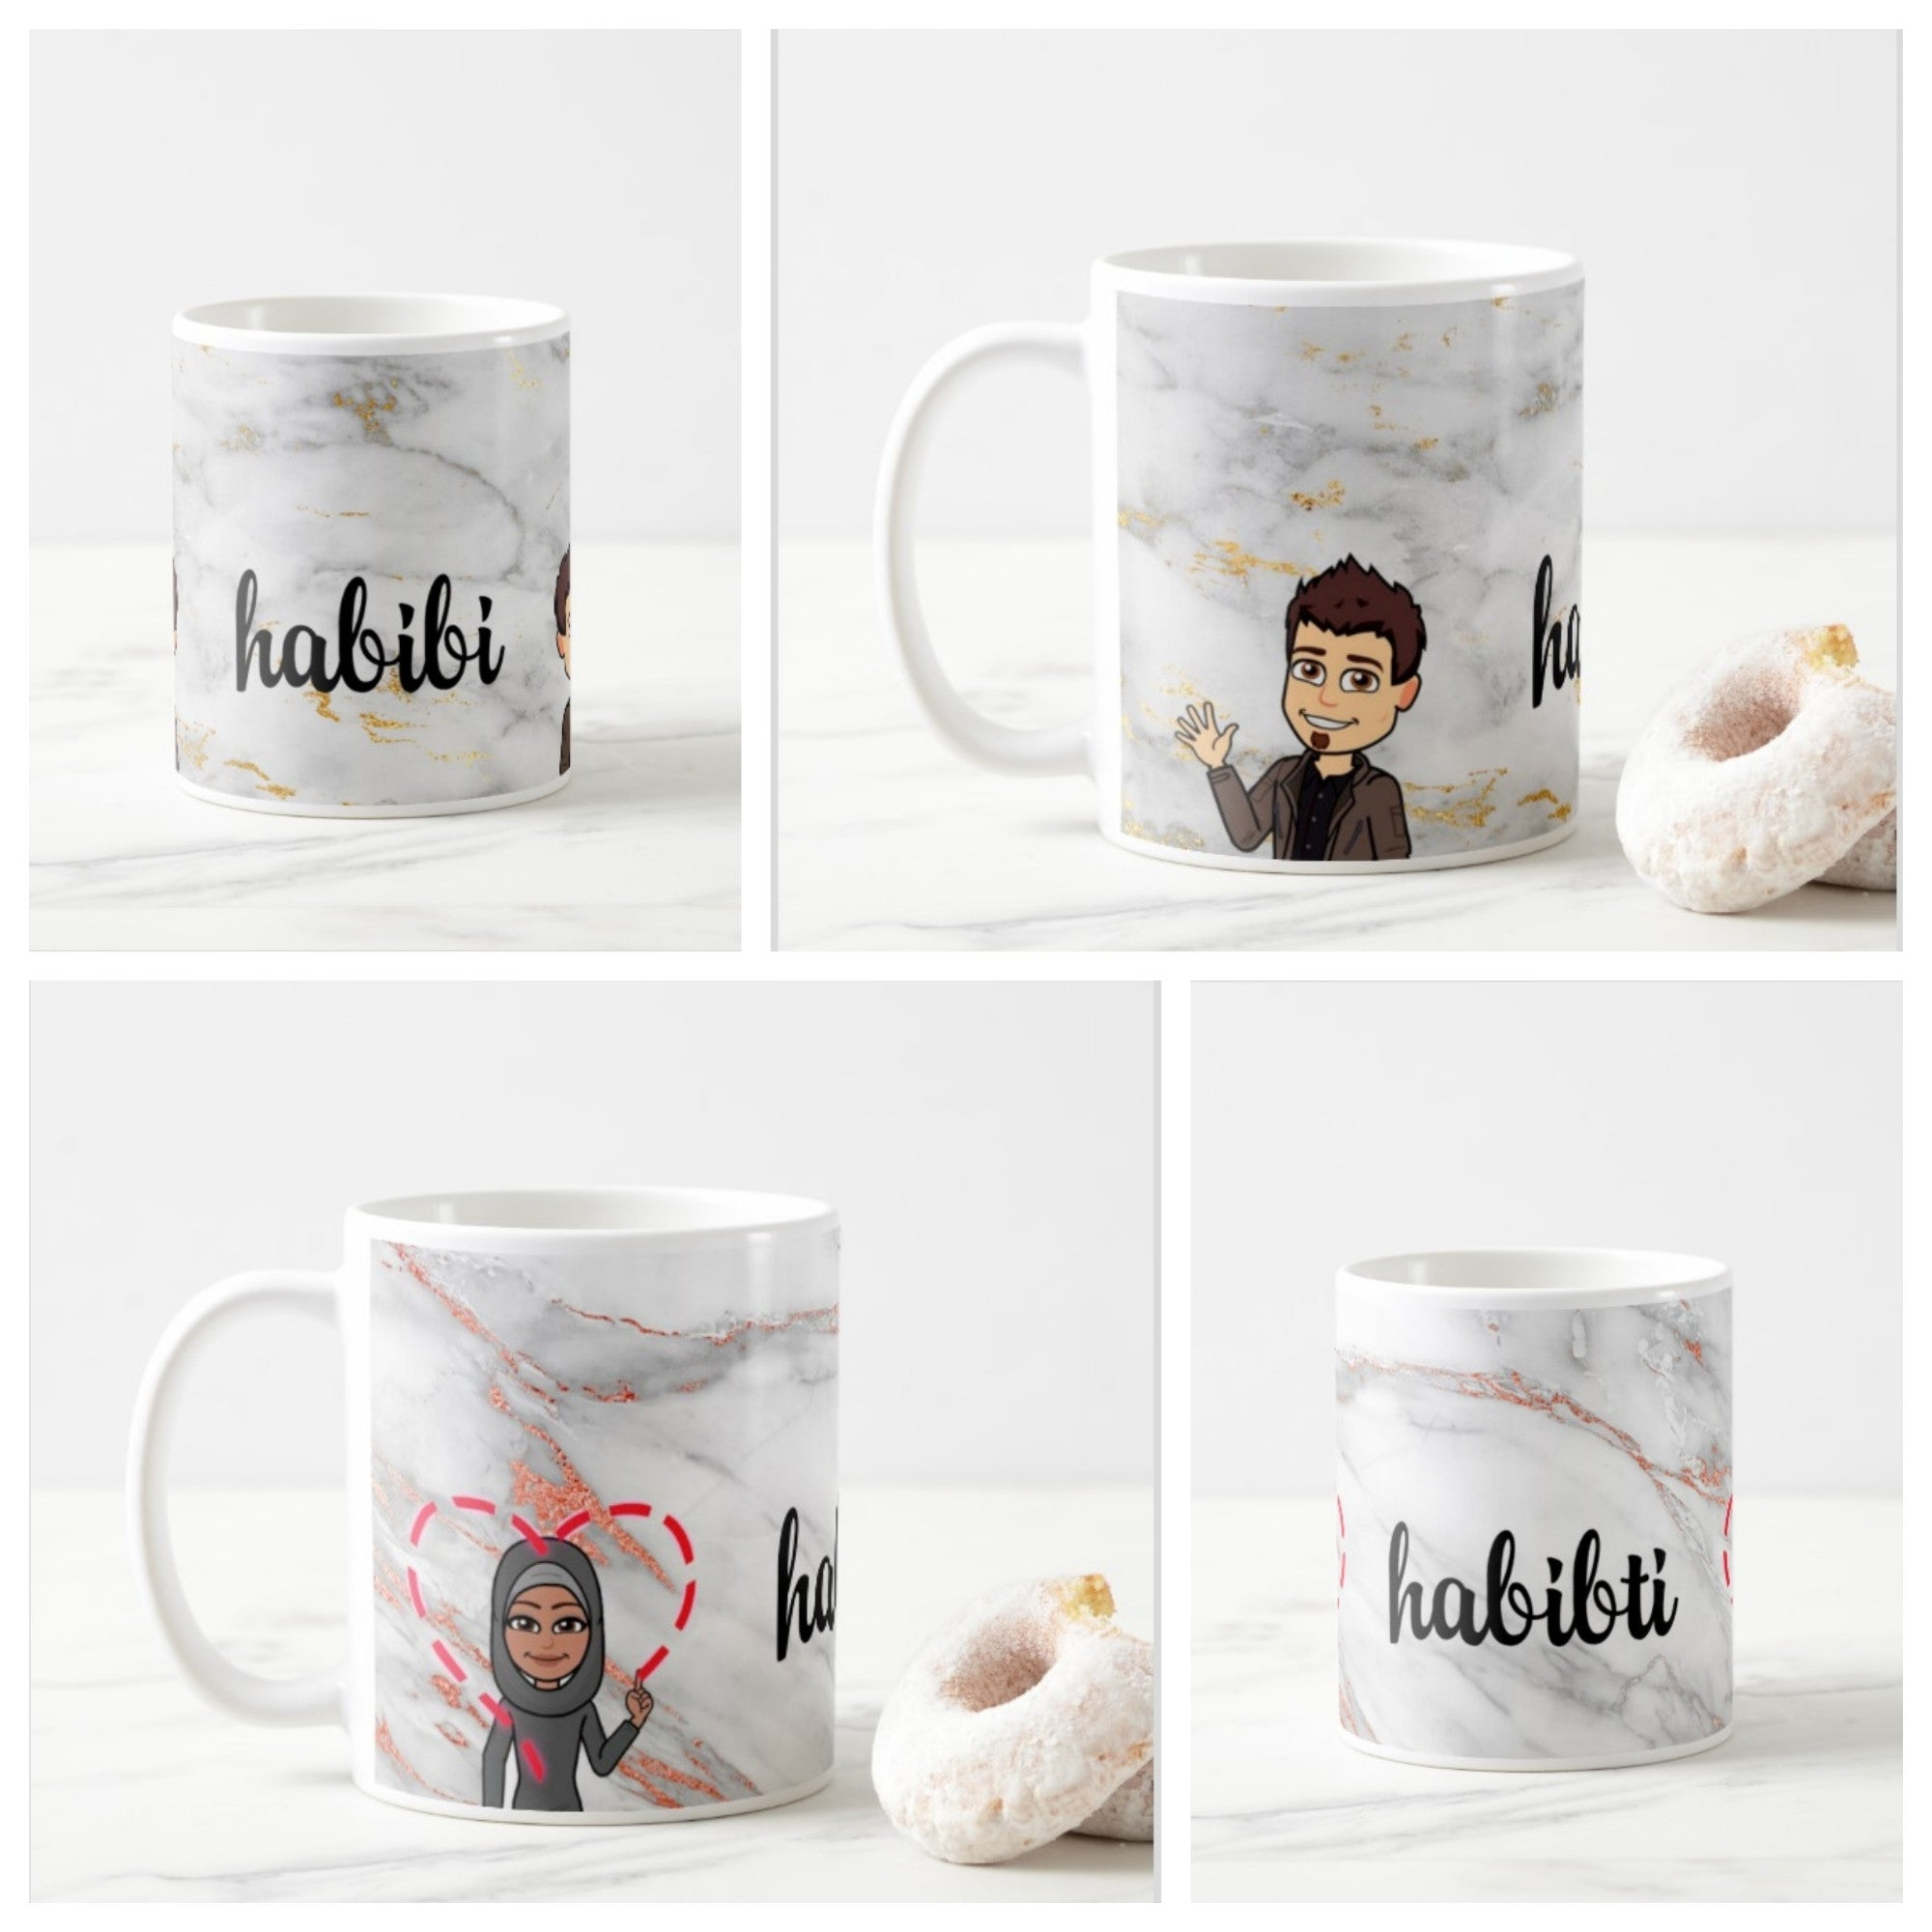 Pack of 2 Bitmoji Habibi and Habibti Mugs